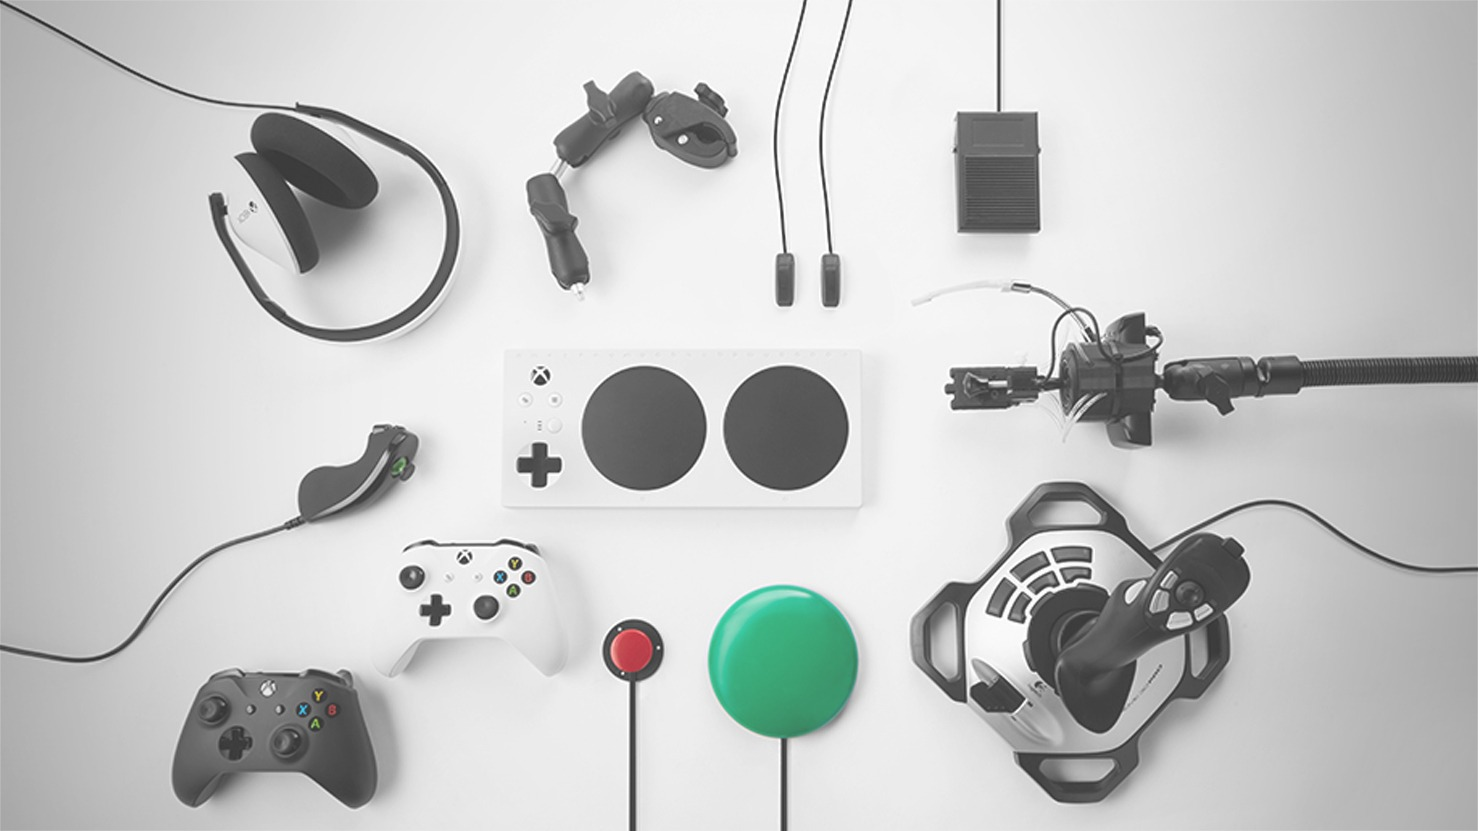 Microsoft's Groundbreaking XBox Adaptive Controller Launching in September